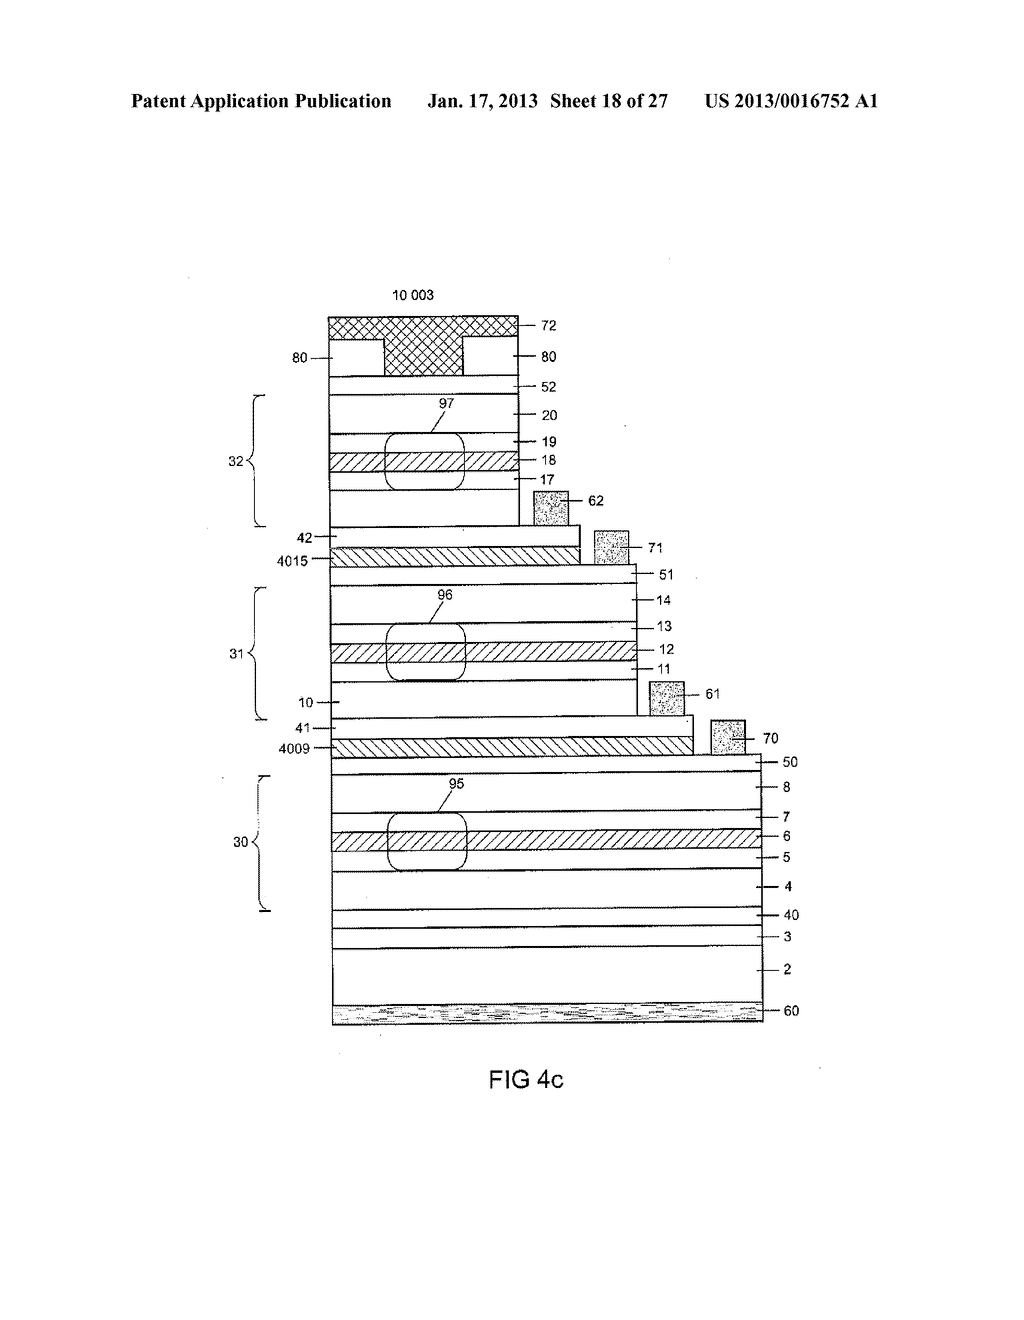 Laser Diode Assembly and Method for Producing a Laser Diode AssemblyAANM Lell; AlfredAACI Maxhutte-HaidhofAACO DEAAGP Lell; Alfred Maxhutte-Haidhof DEAANM Straussburg; MartinAACI DonaustaufAACO DEAAGP Straussburg; Martin Donaustauf DE - diagram, schematic, and image 19